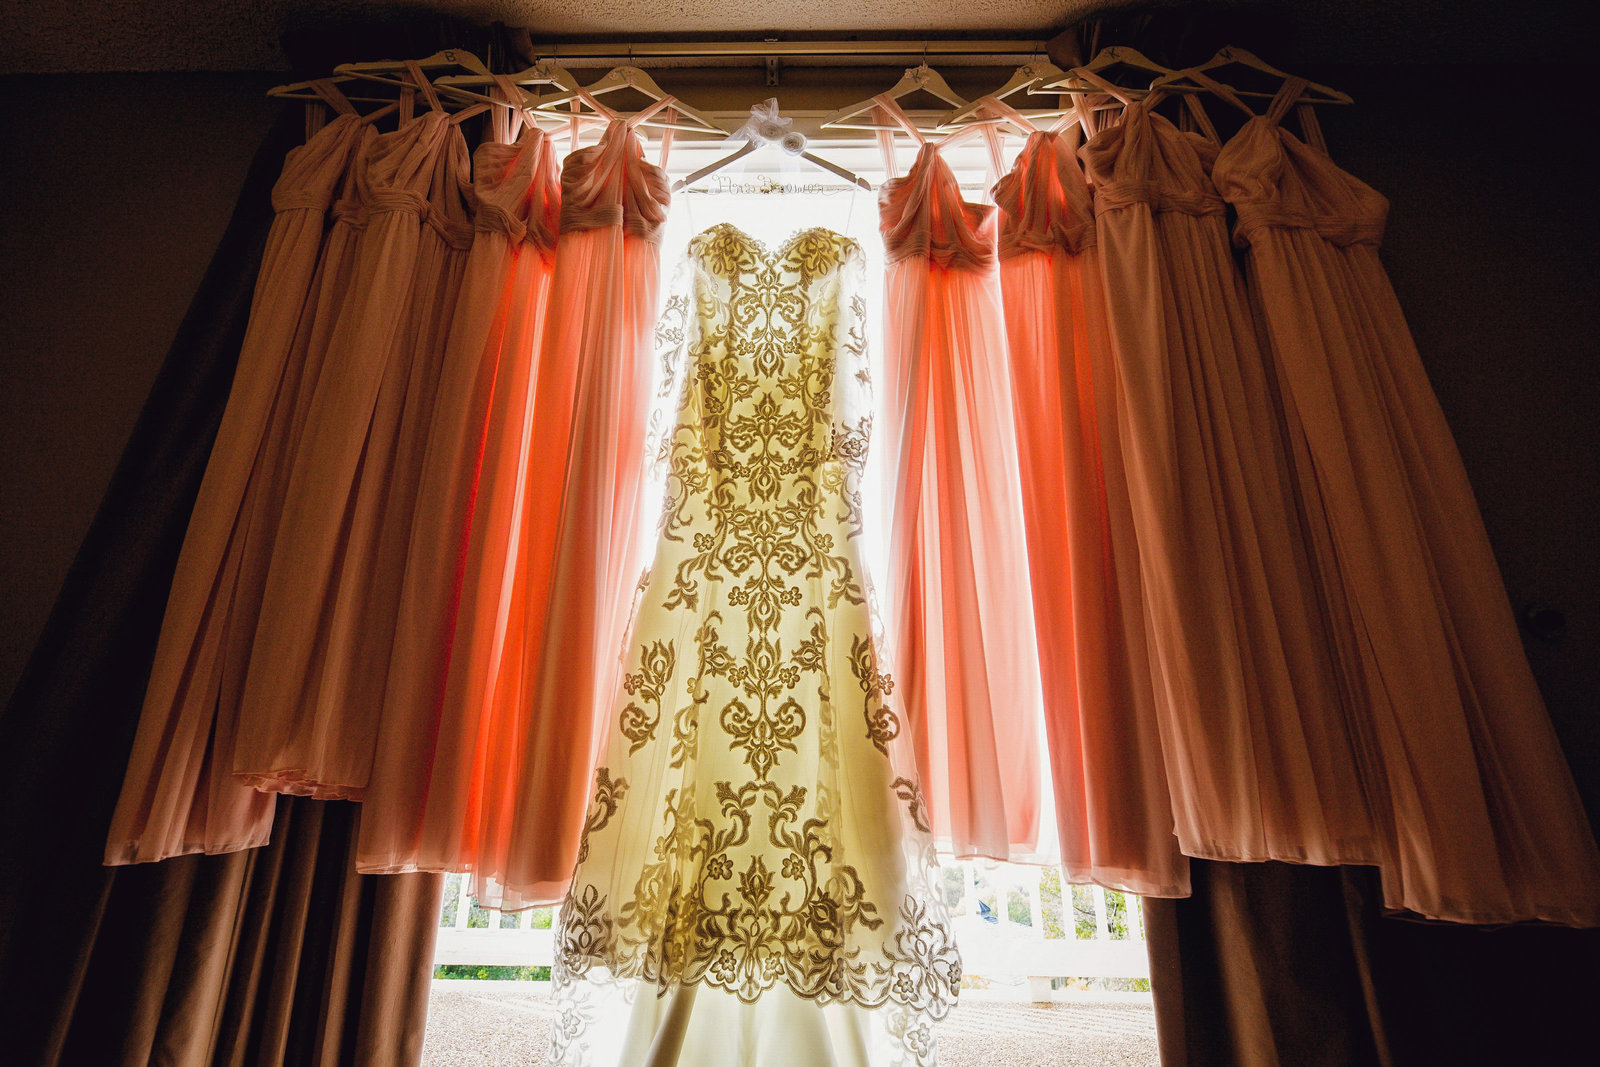 backlit image of brides and bridesmaids dress hanging in front of a window